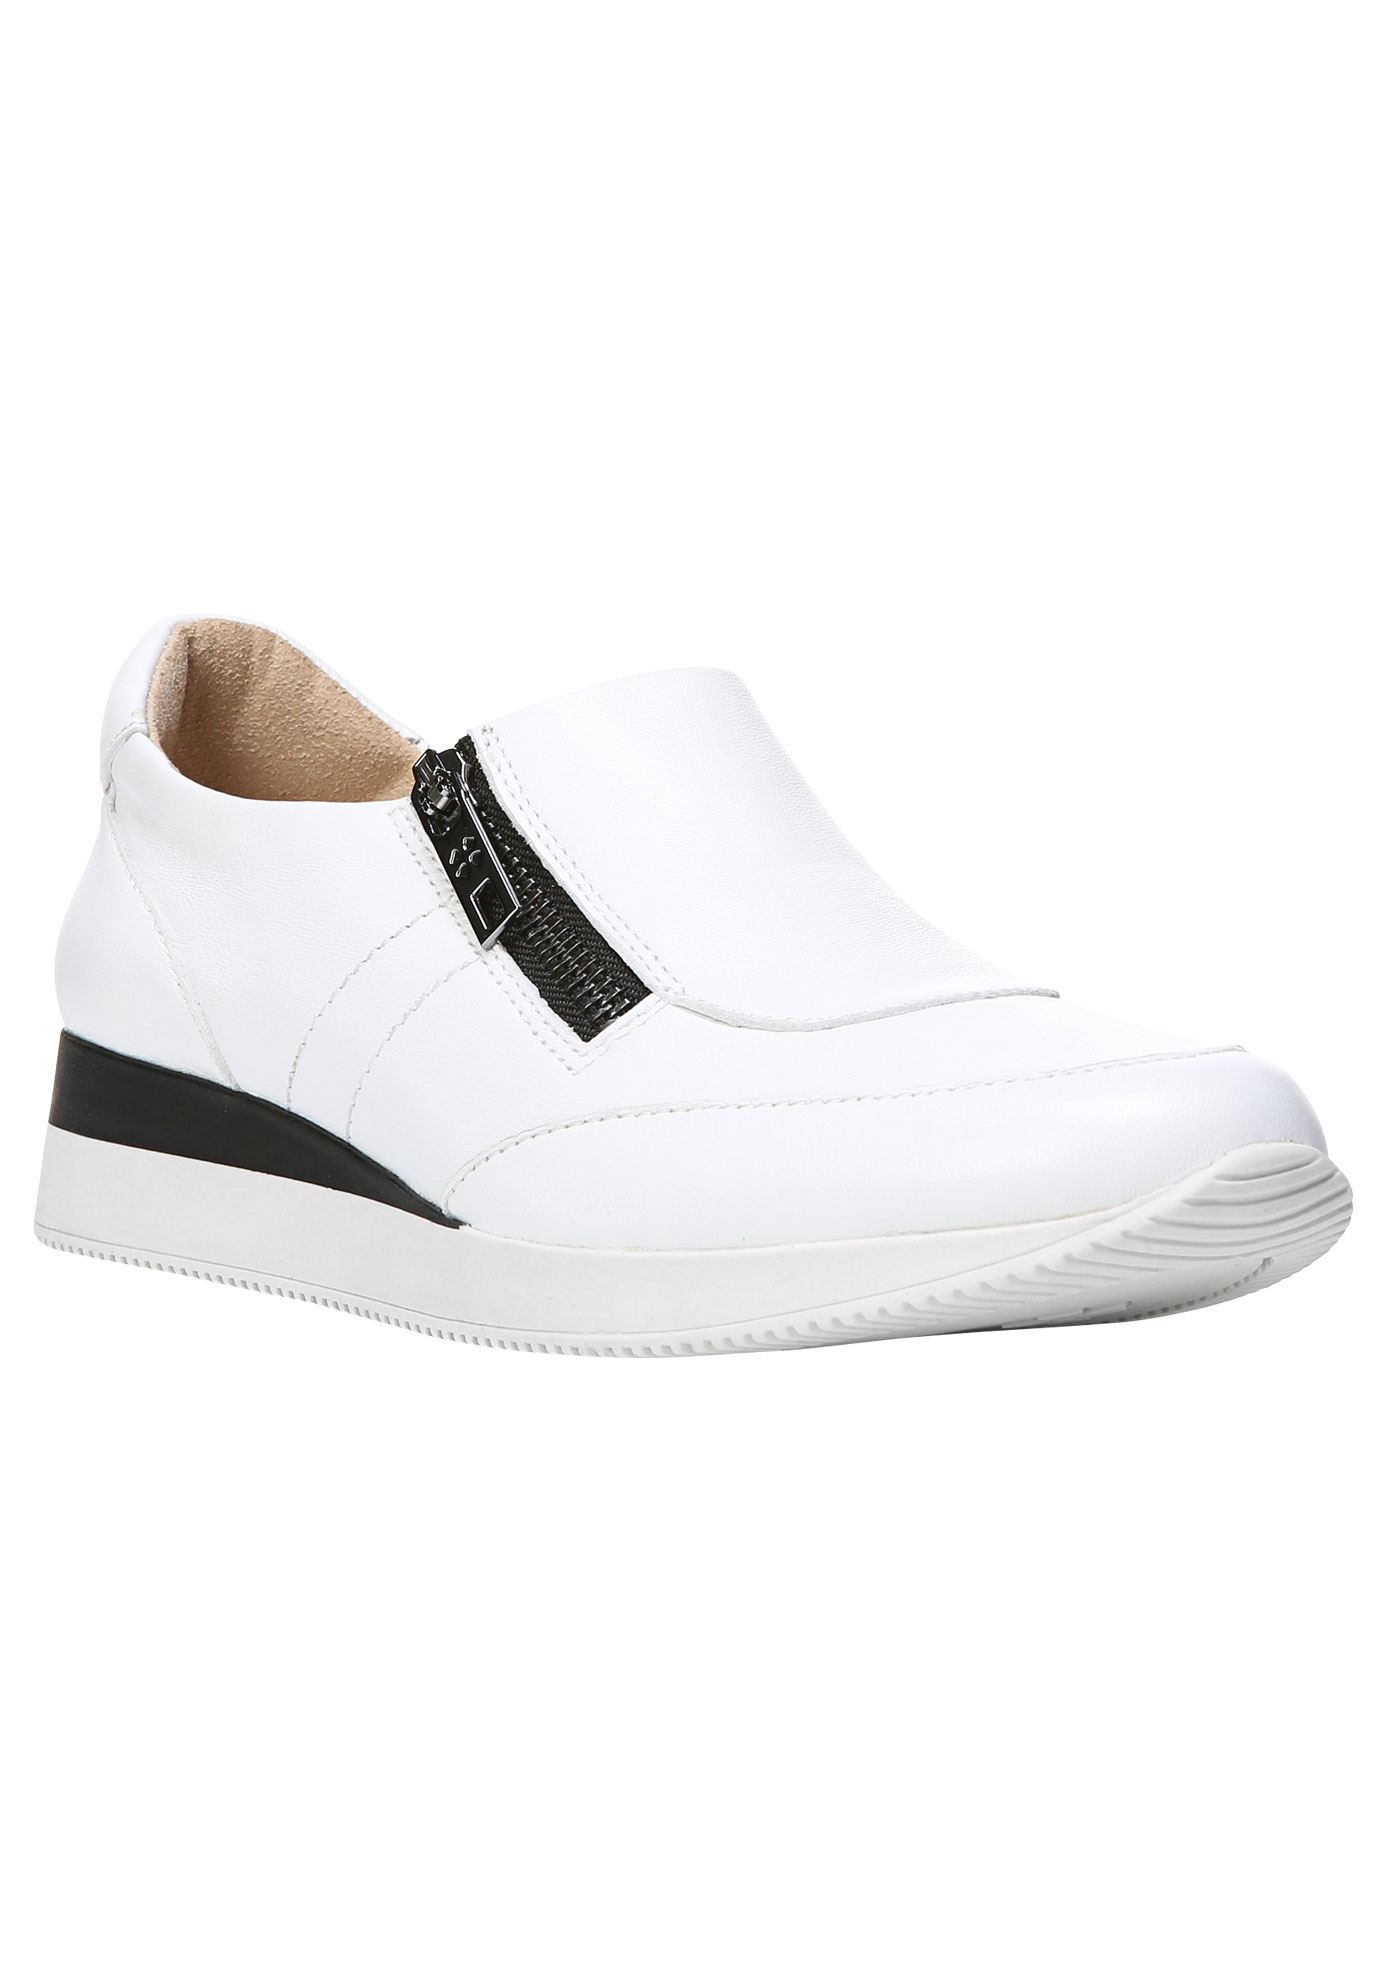 Jetty Sneakers by Naturalizer®,